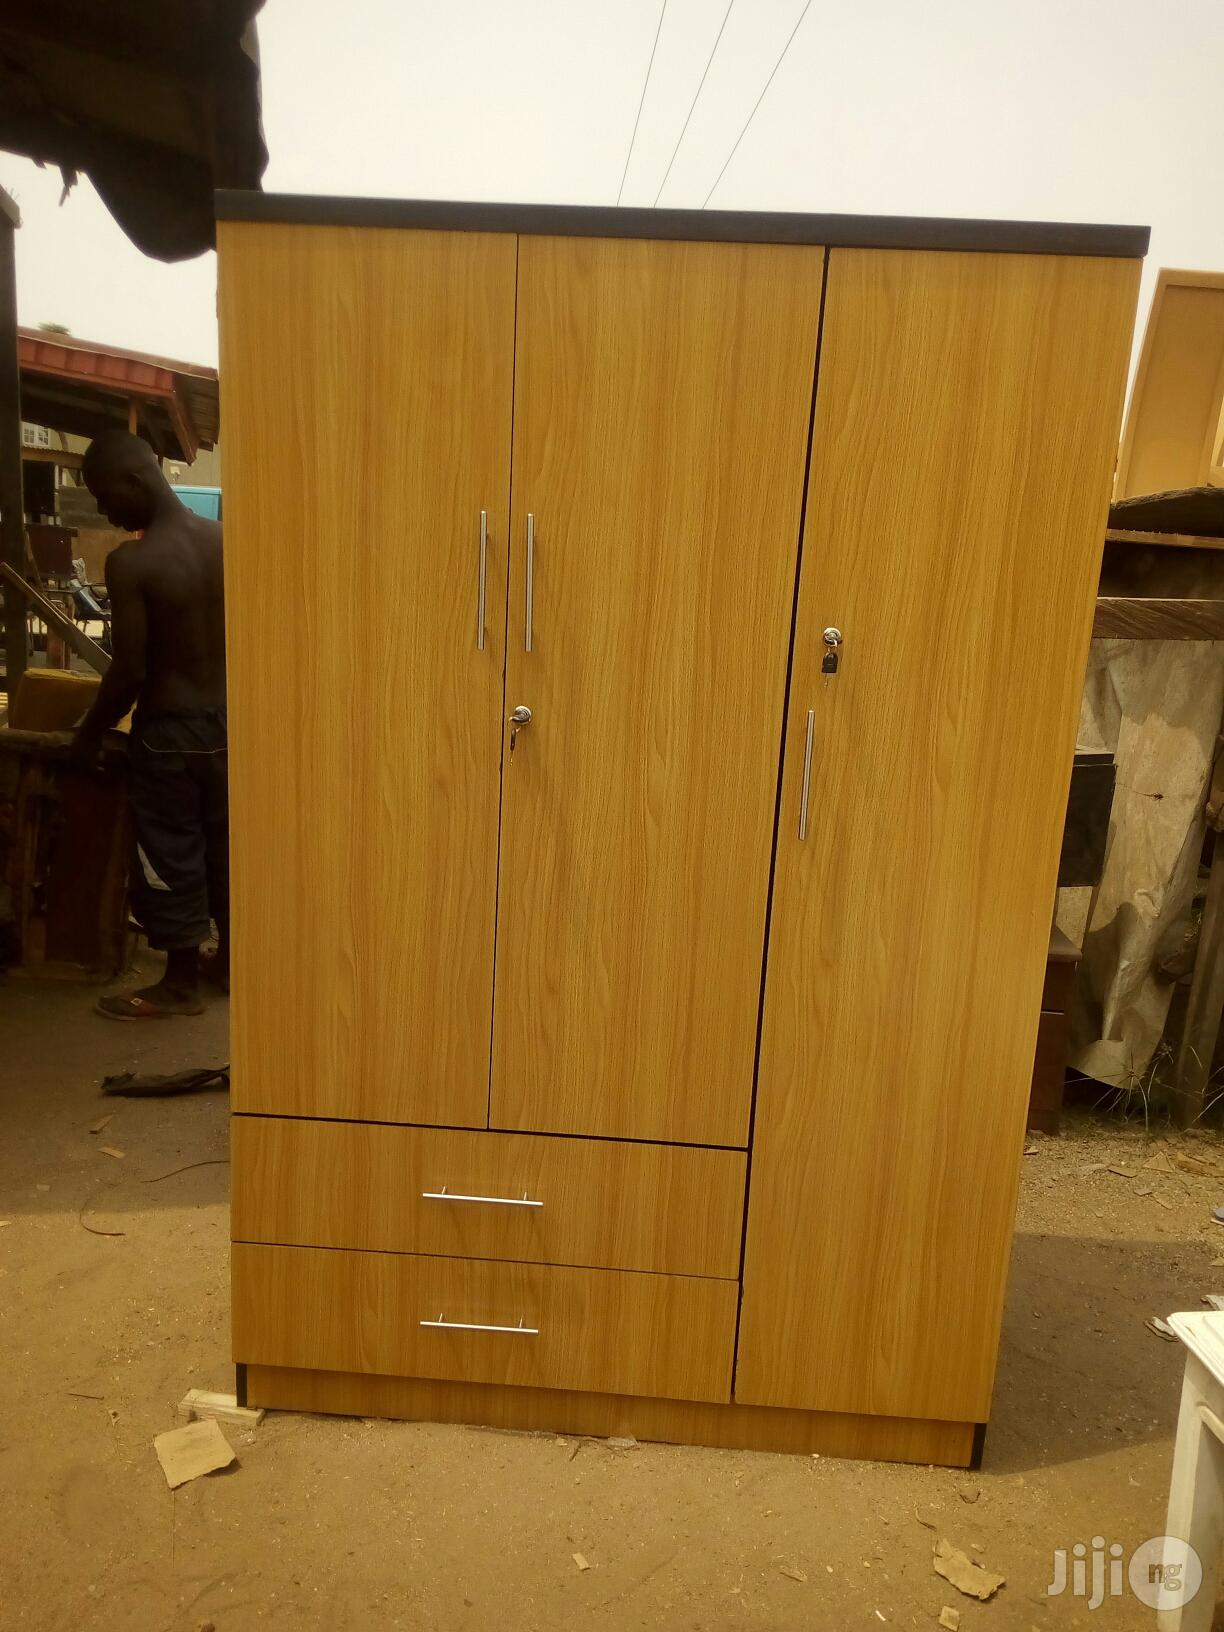 Standard Wardrobe | Furniture for sale in Ikeja, Lagos State, Nigeria